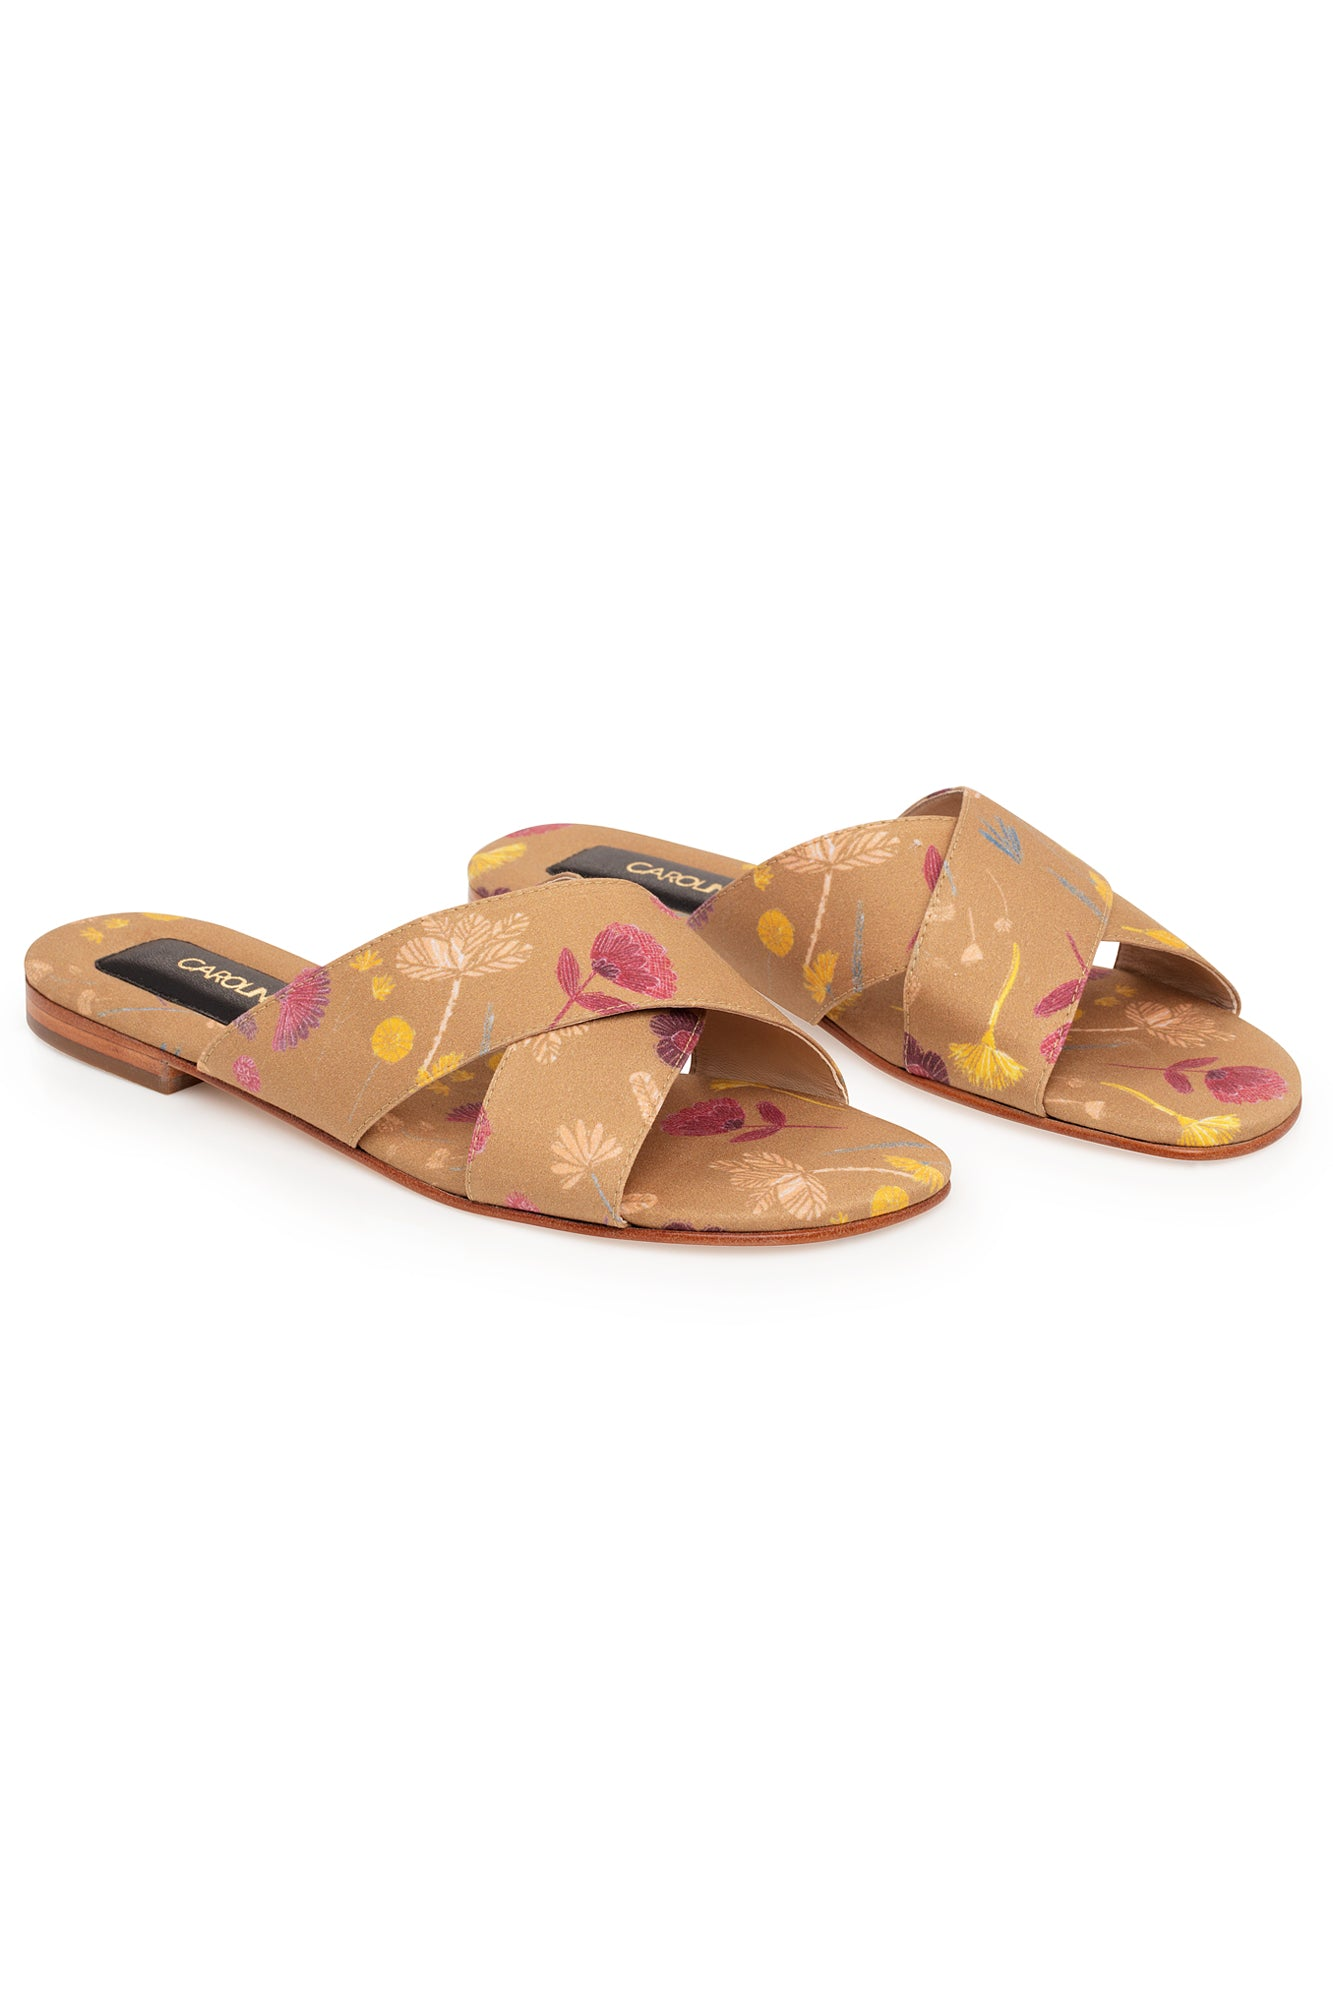 Carolina K Cross Sandal in Cinnamon Tea Flowers